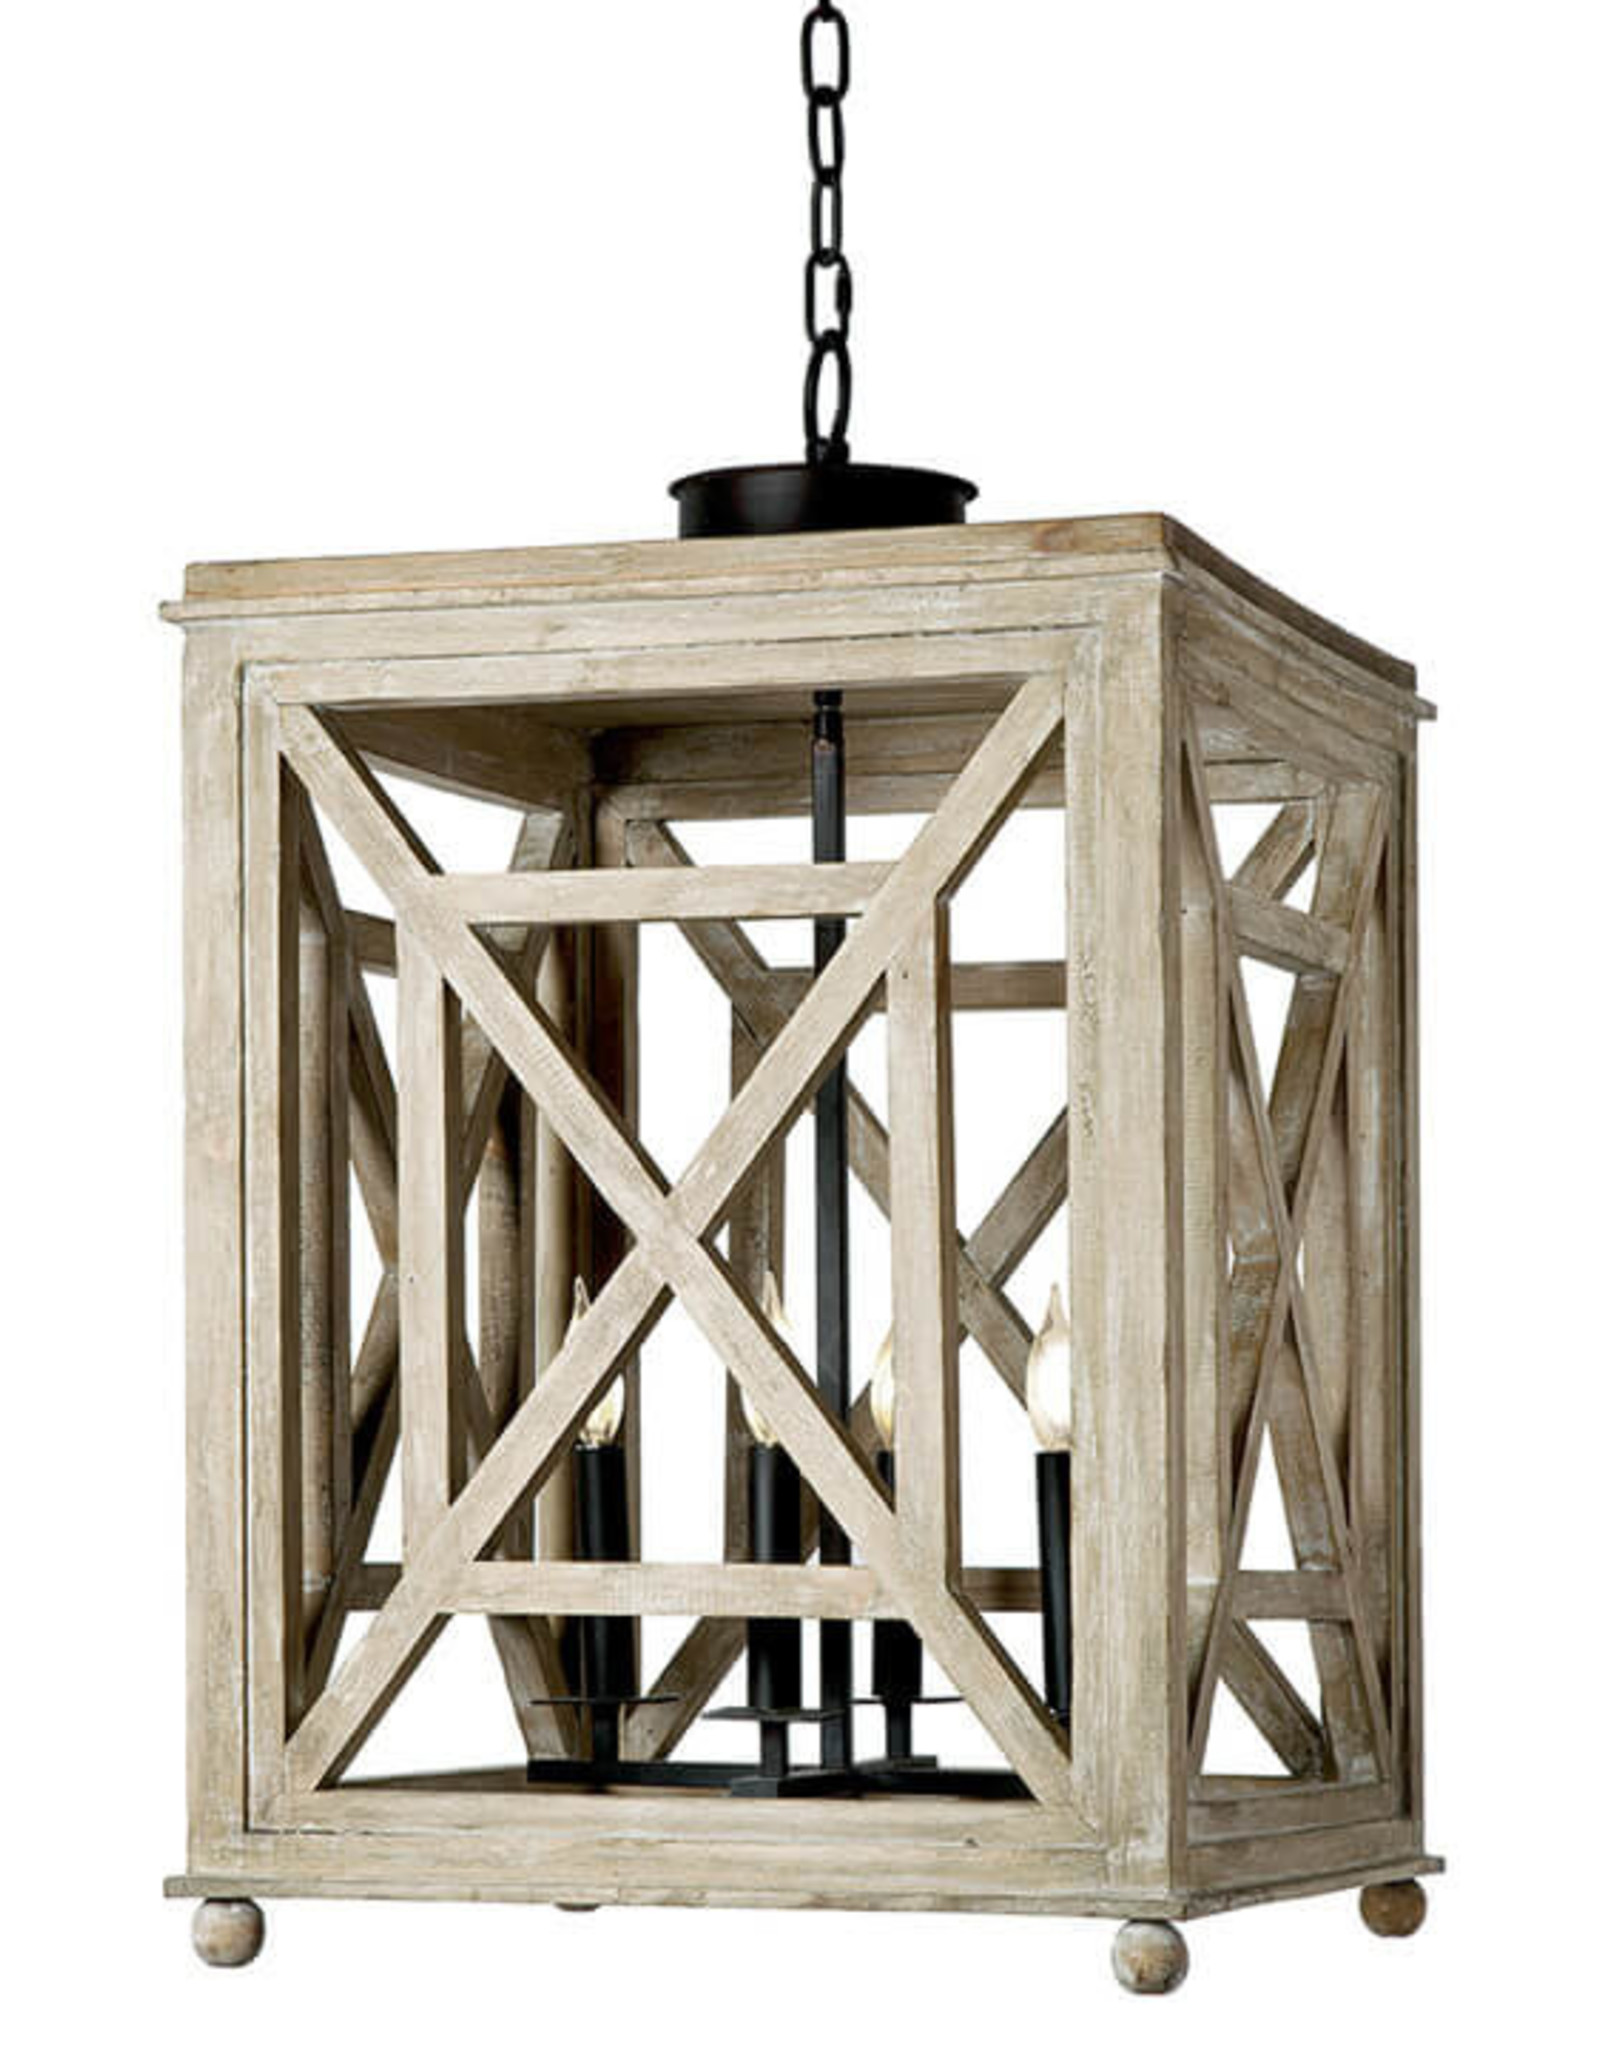 Regina Andrew Design Wood Lattice Lantern